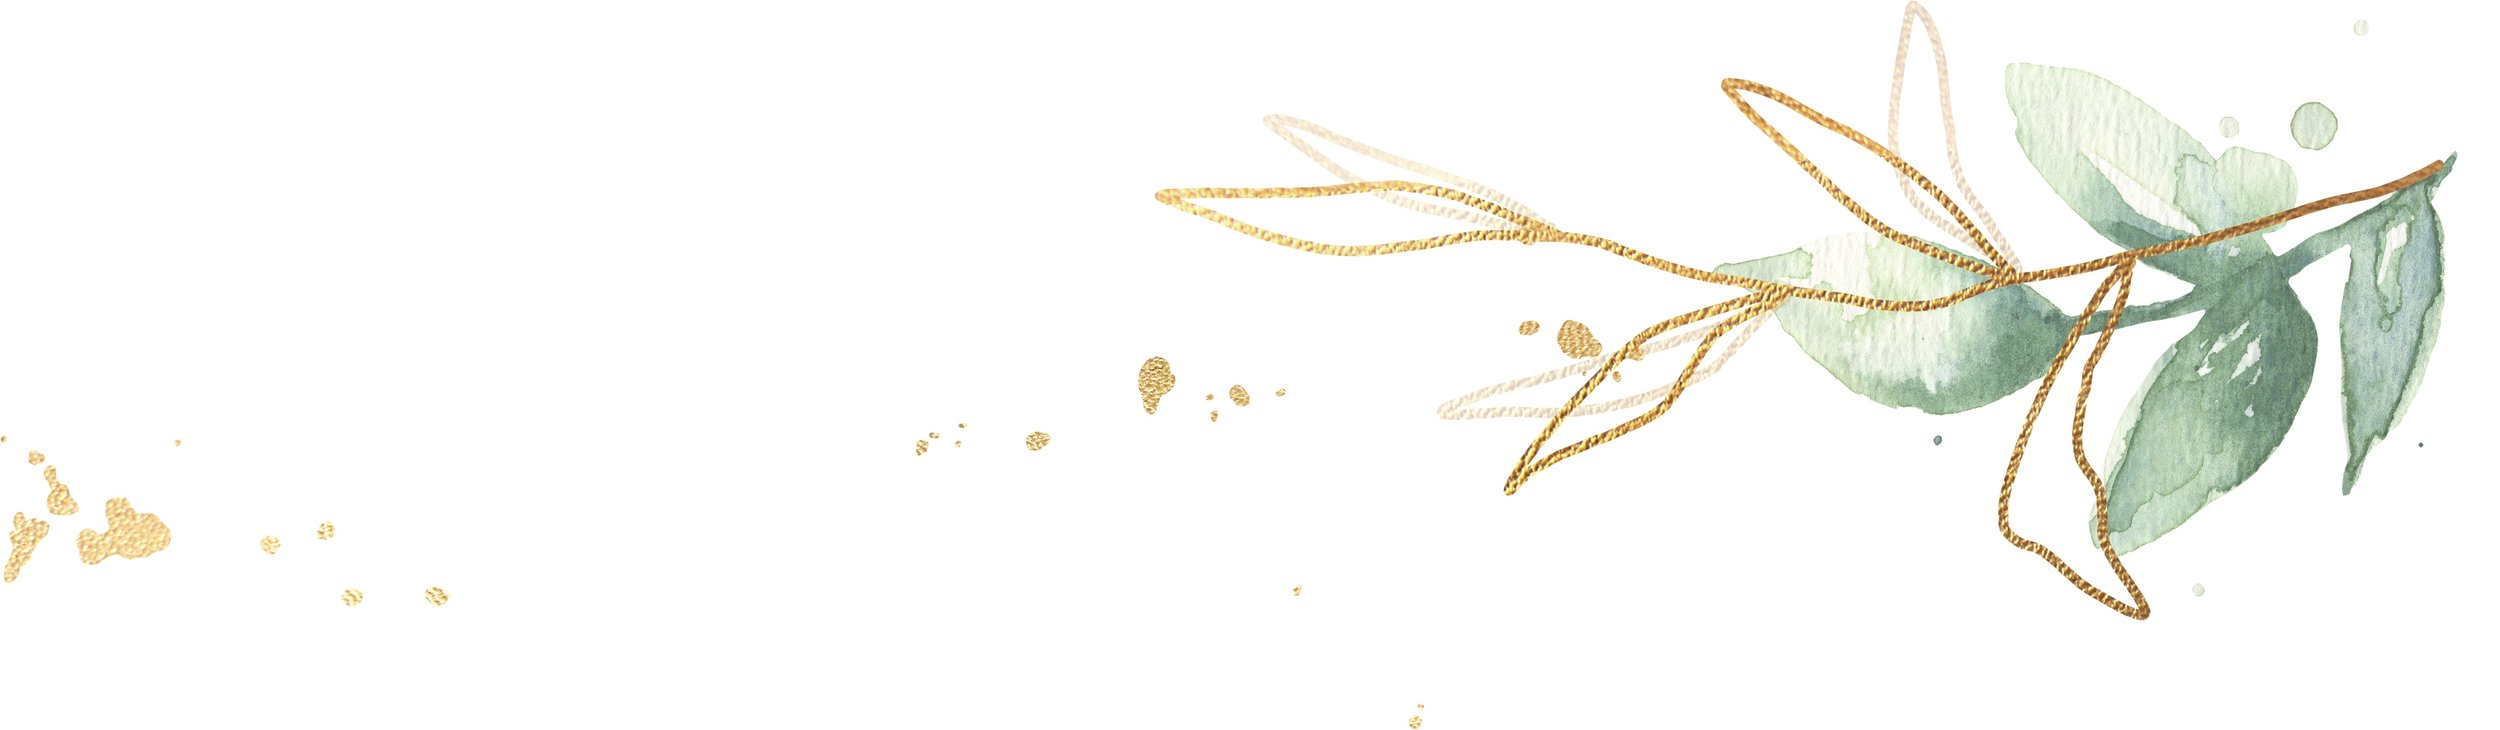 gold leaf element - Pearl Weddings & Events